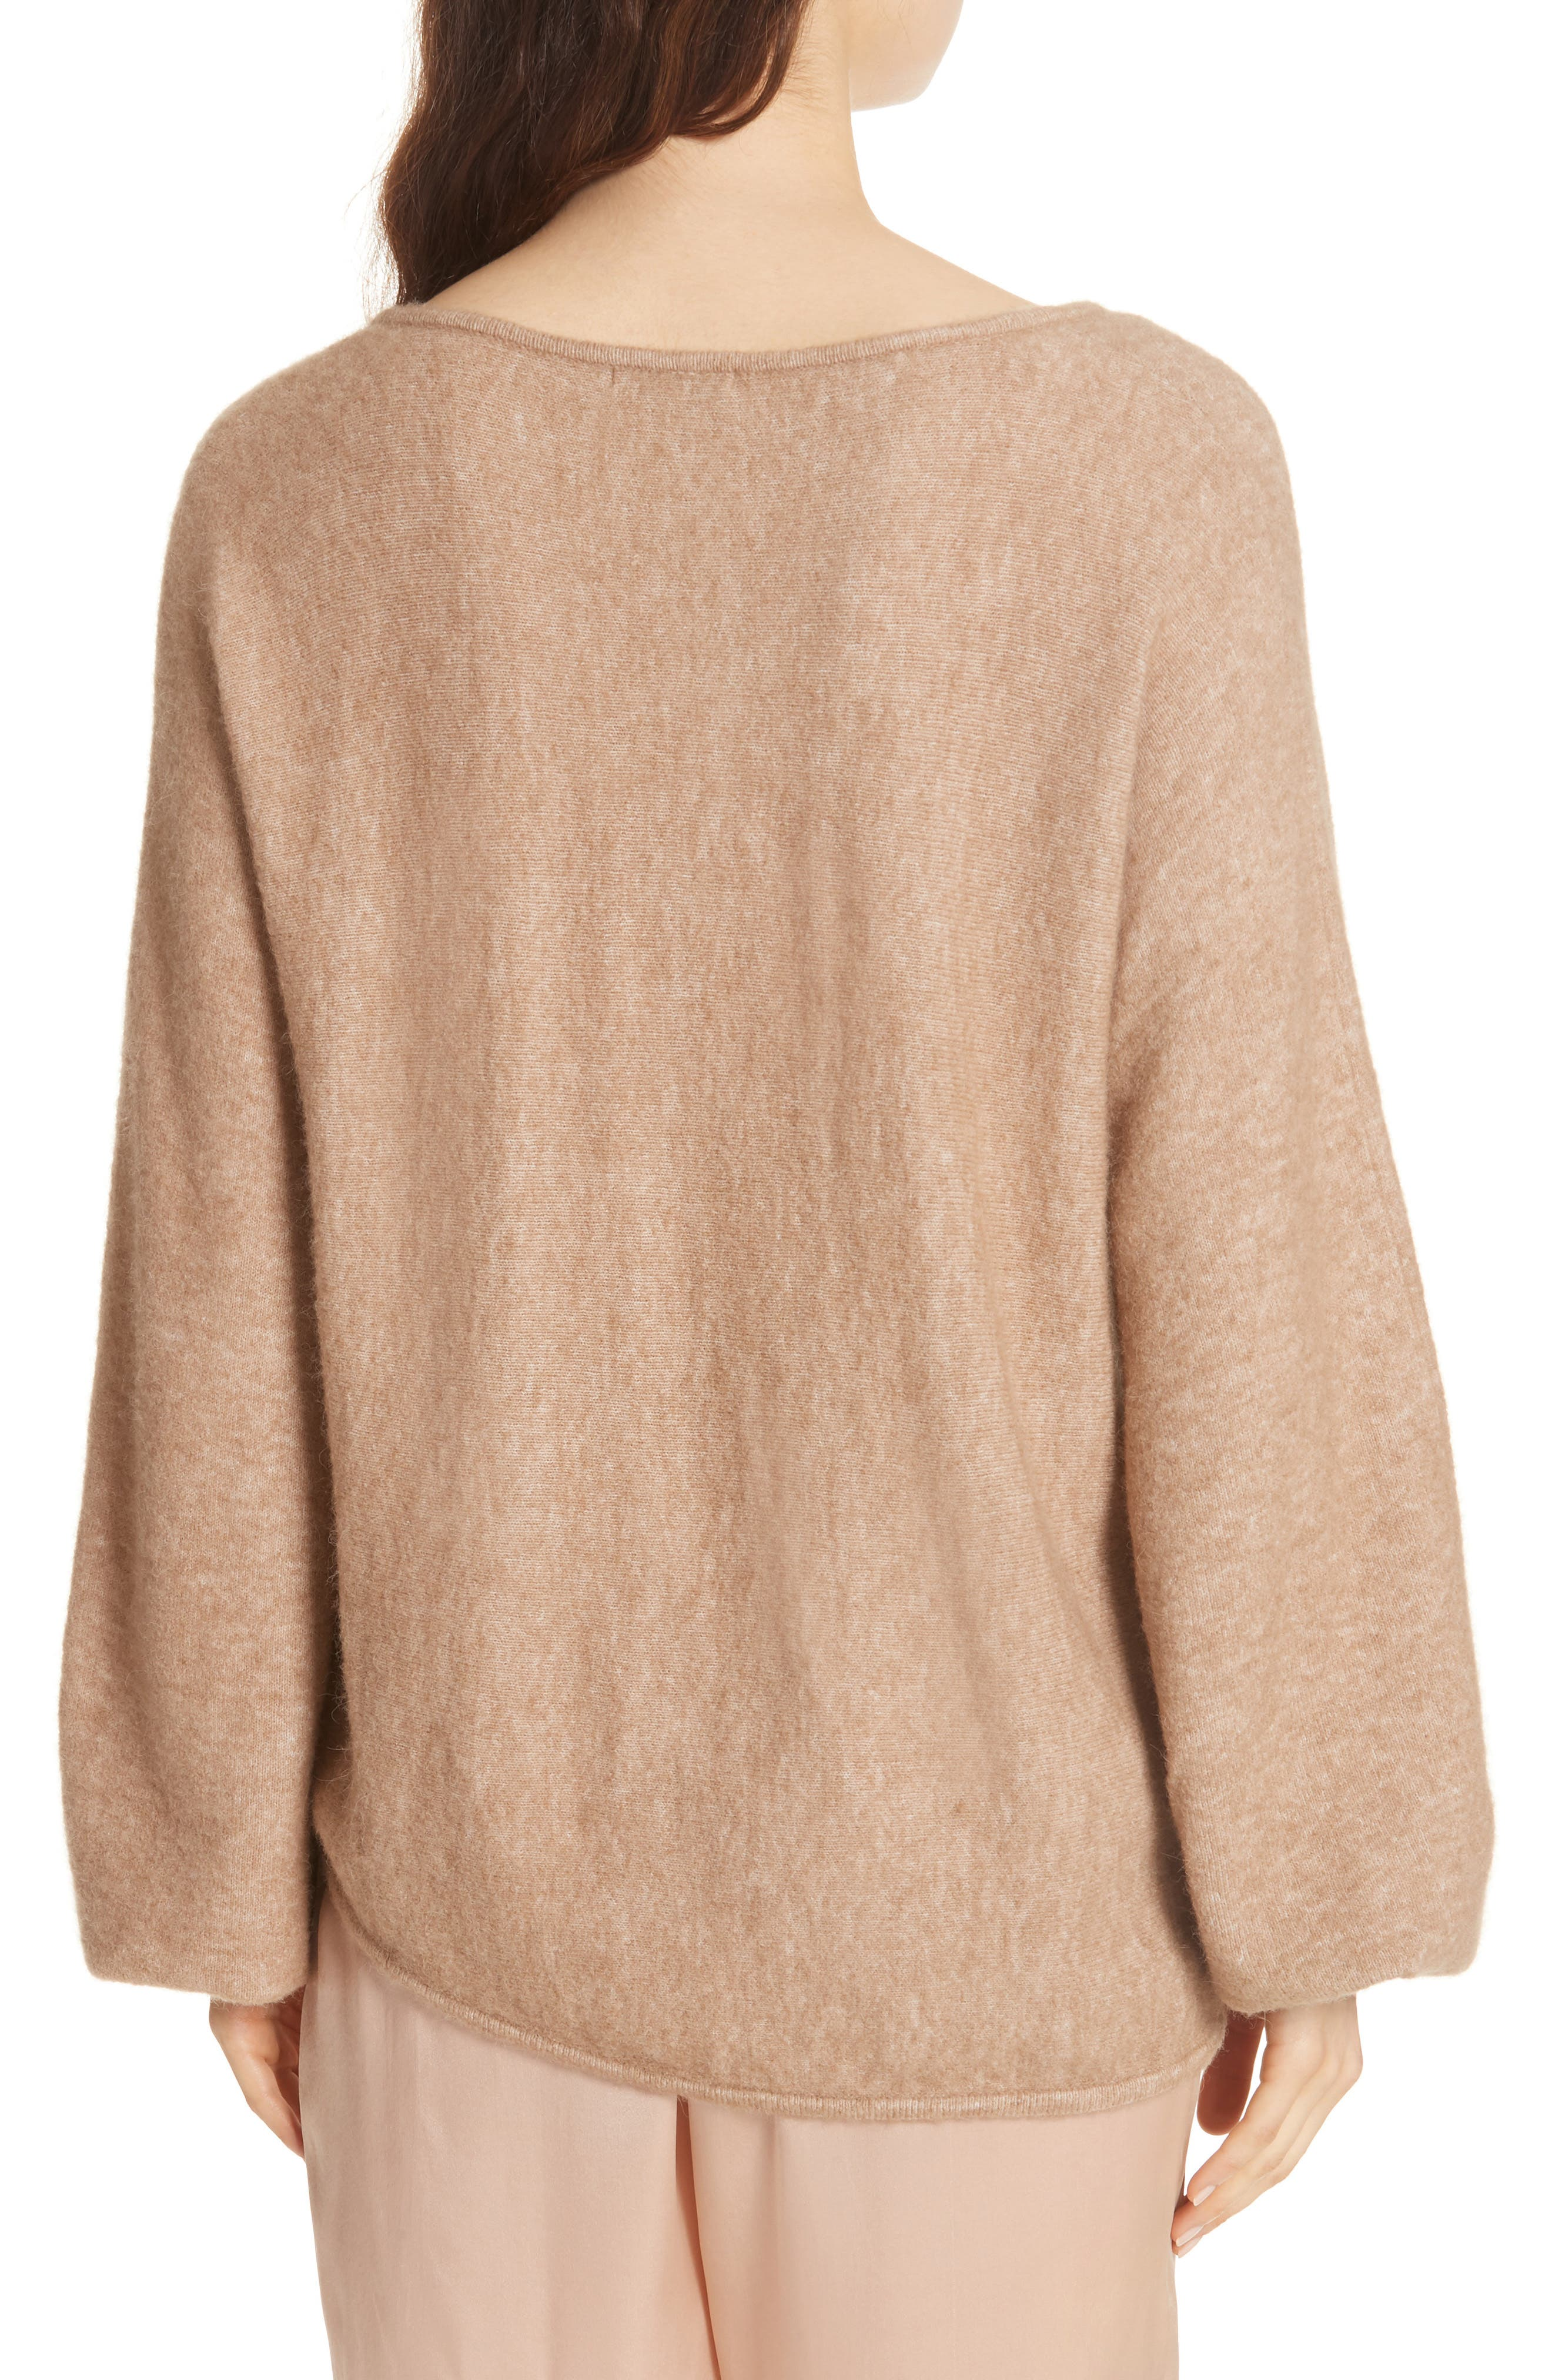 Meridien Sweater,                             Alternate thumbnail 2, color,                             CAMEL